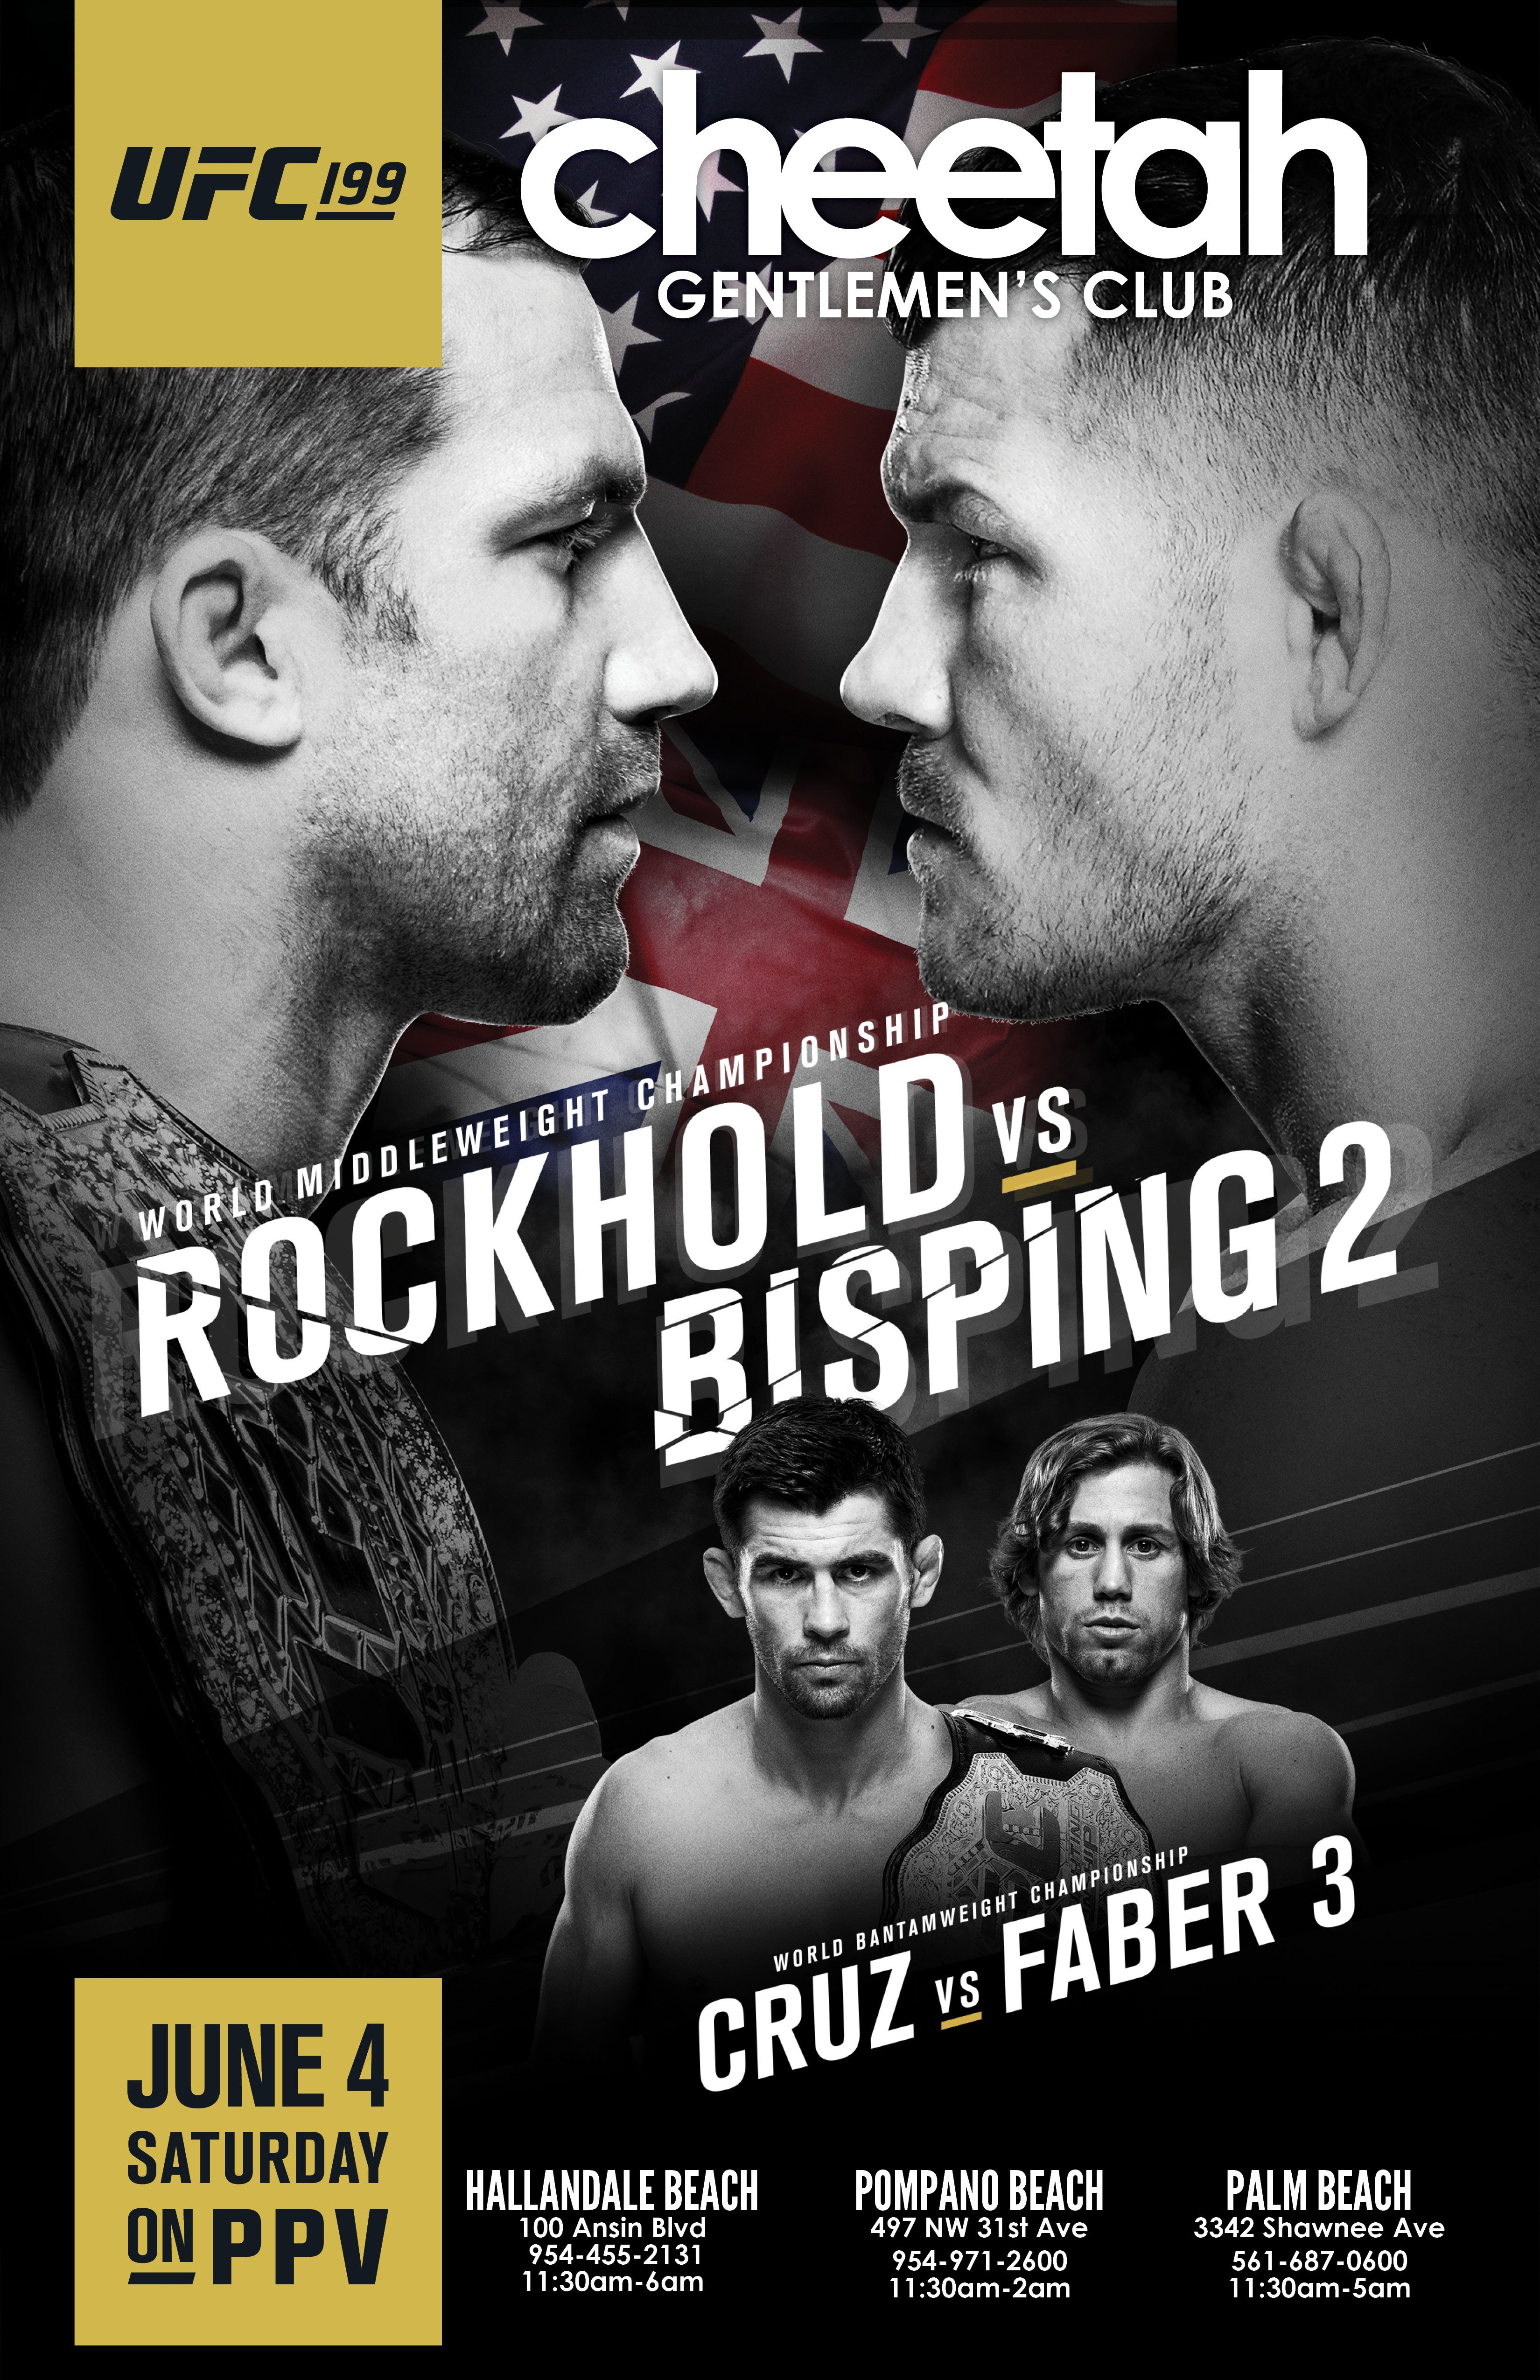 Ufc 199 Saturday June 4th Rockhold Vs Bisping 2 Watch It Here Live Ufc 199 World Middleweight Championship Rockhold Ufc Ufc Poster Mixed Martial Arts